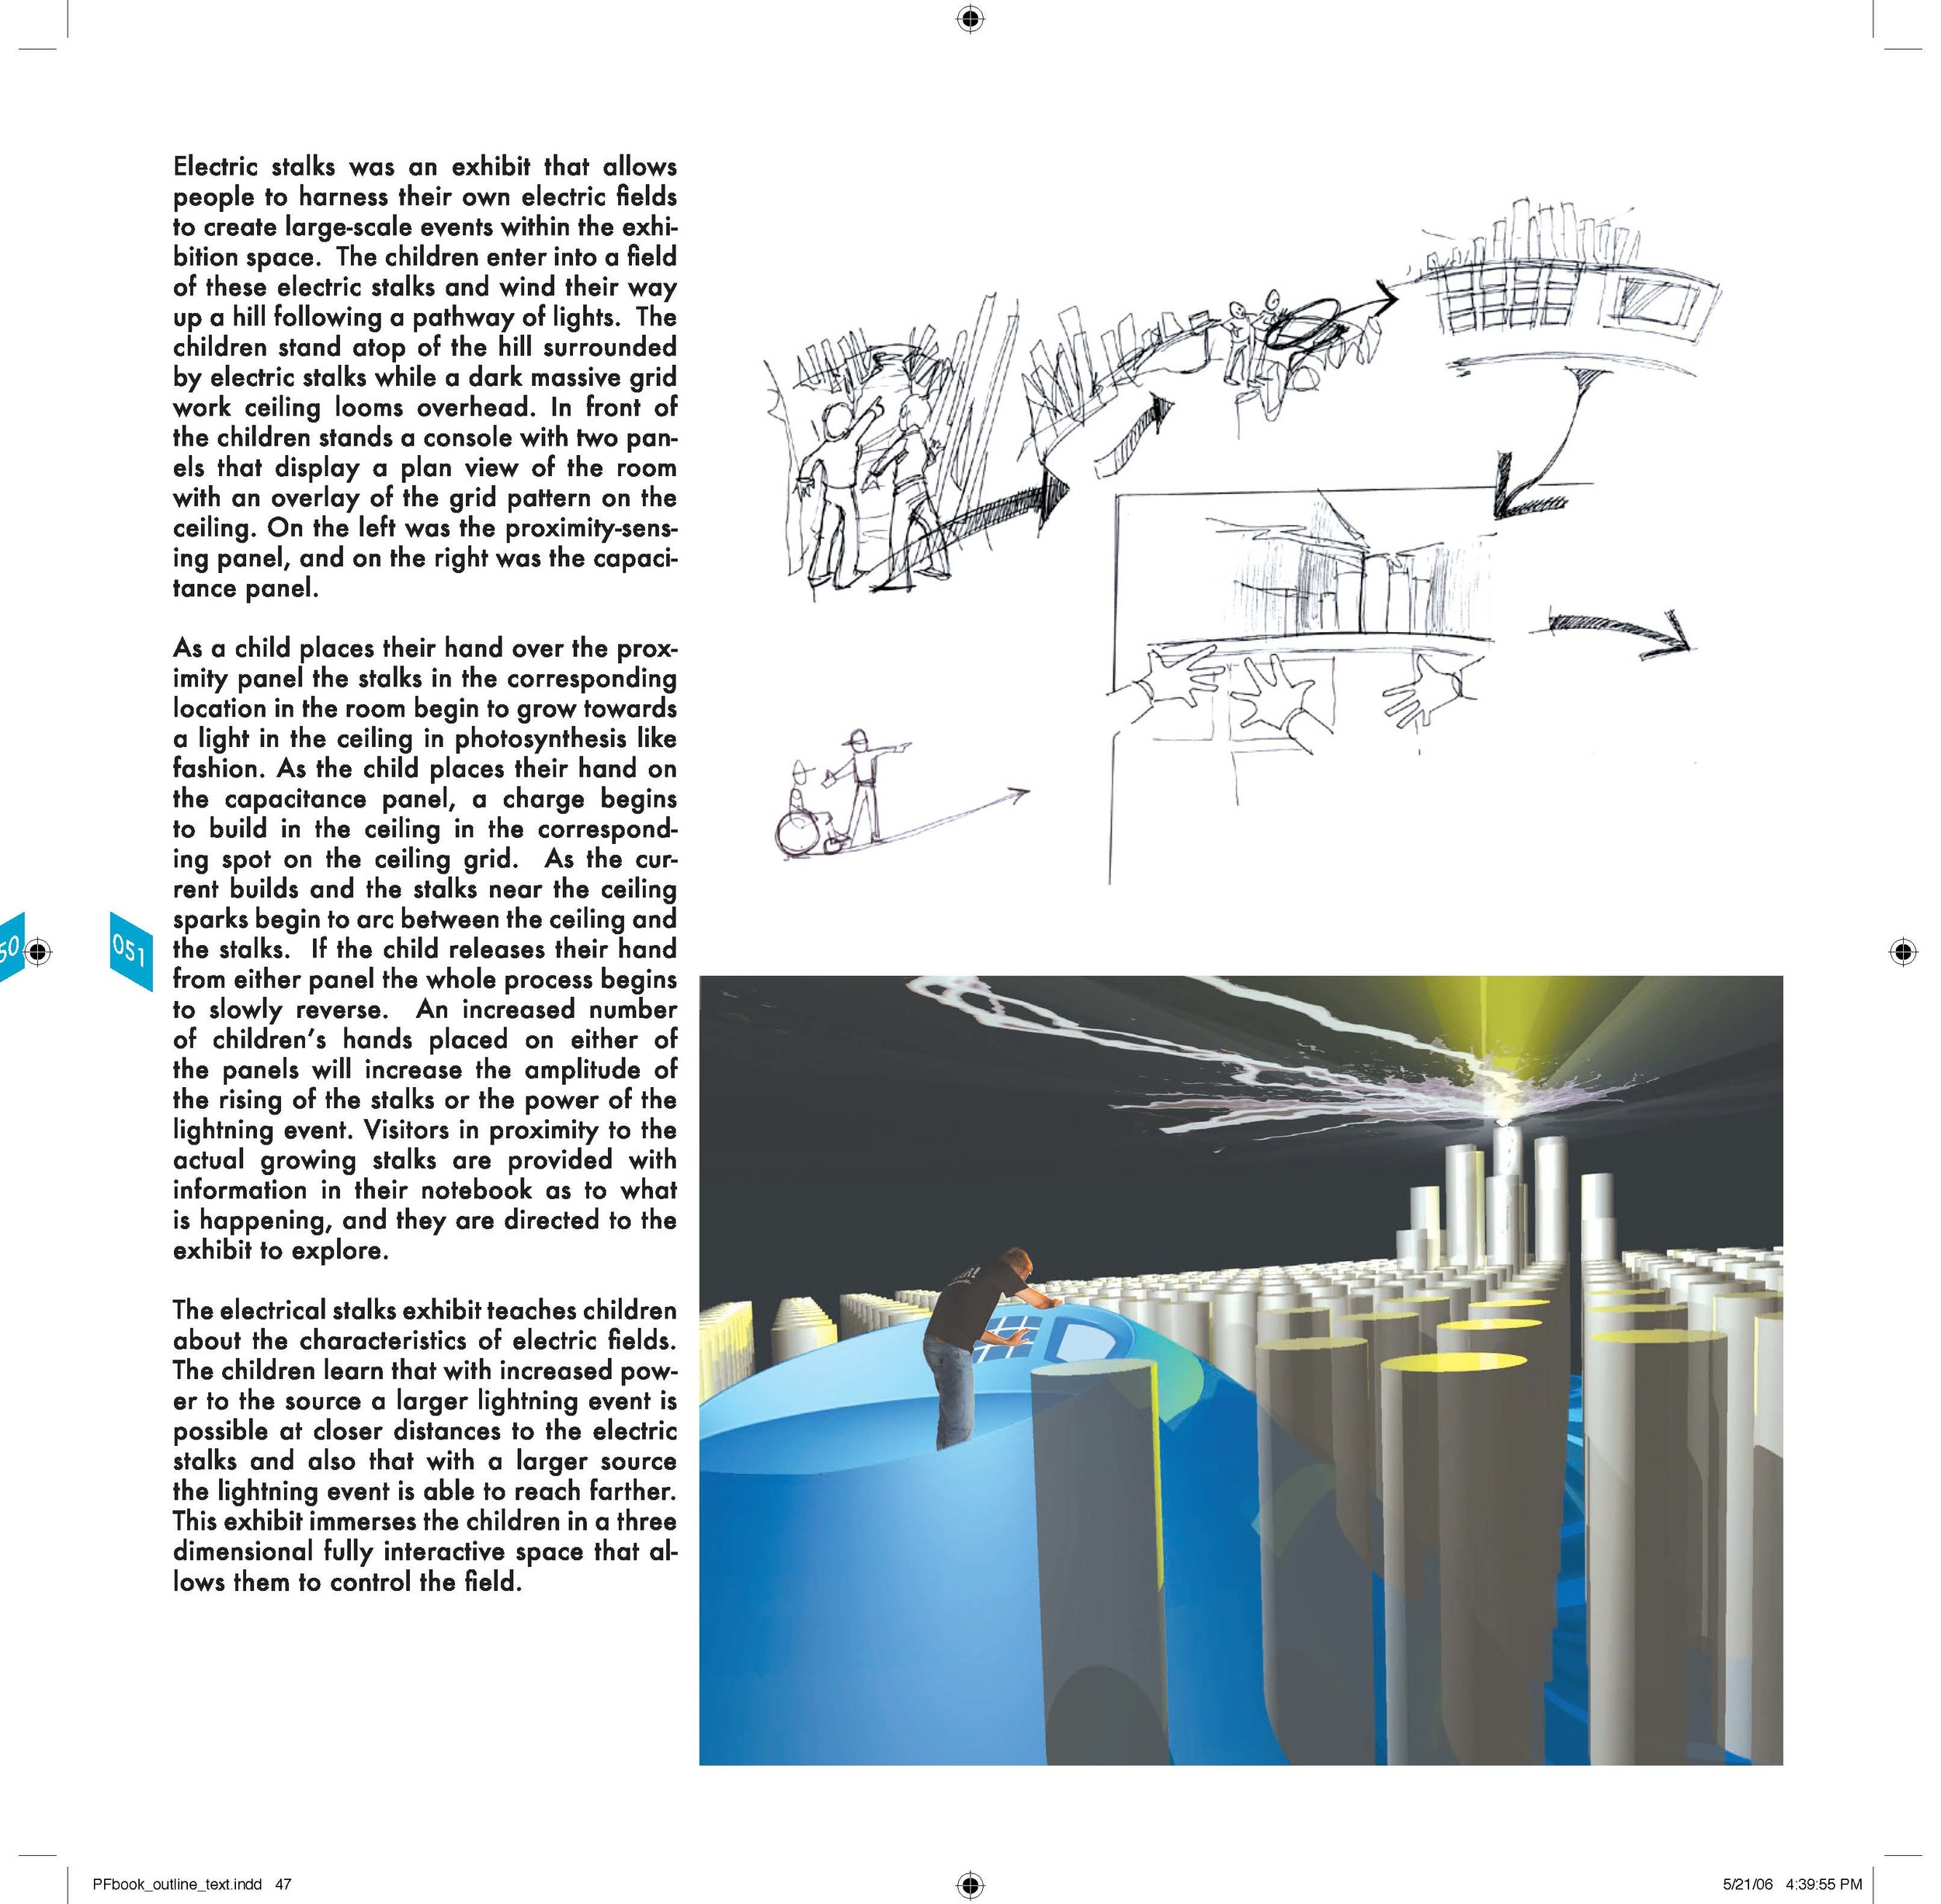 Mapping the invisible book_Page_047.jpg